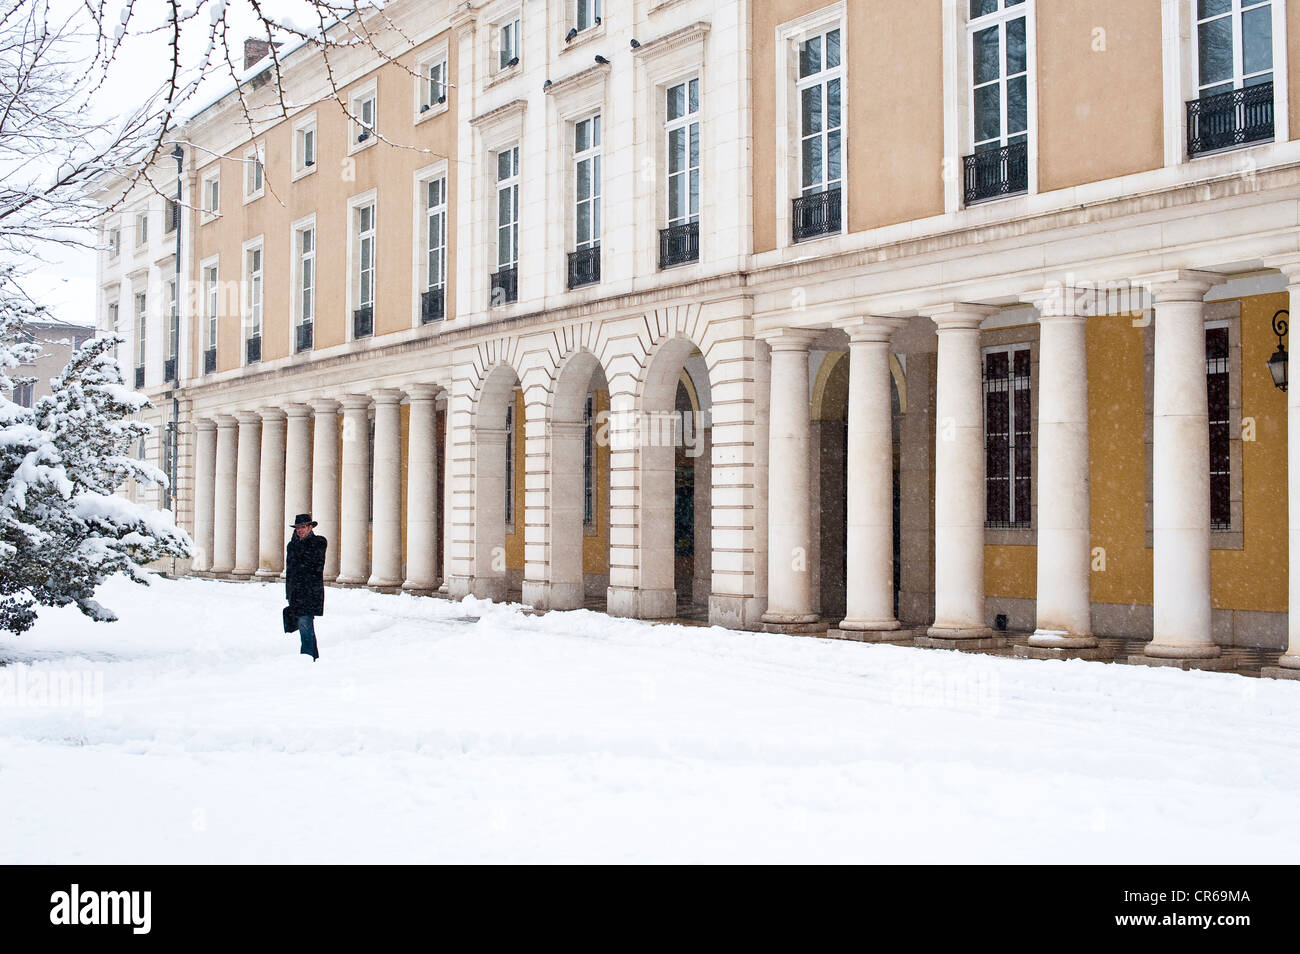 France, Isere, Grenoble in winter, Natural History Museum - Stock Image